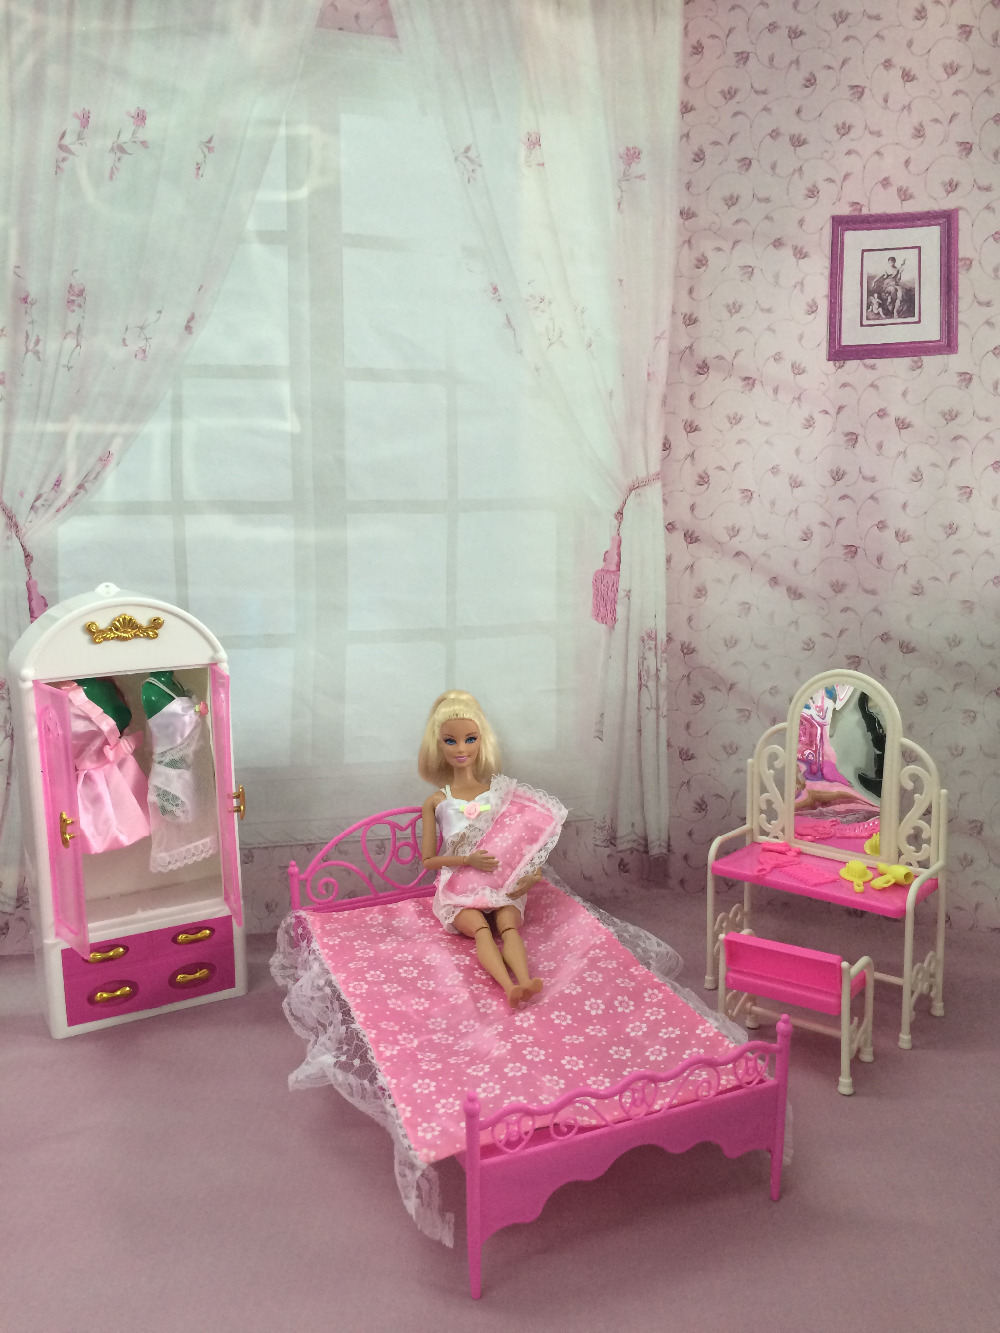 Barbie doll bedroom set - Free Shipping One Set Doll Furniture Wardrobe Dresser Chair Bed Pillows Accessories For